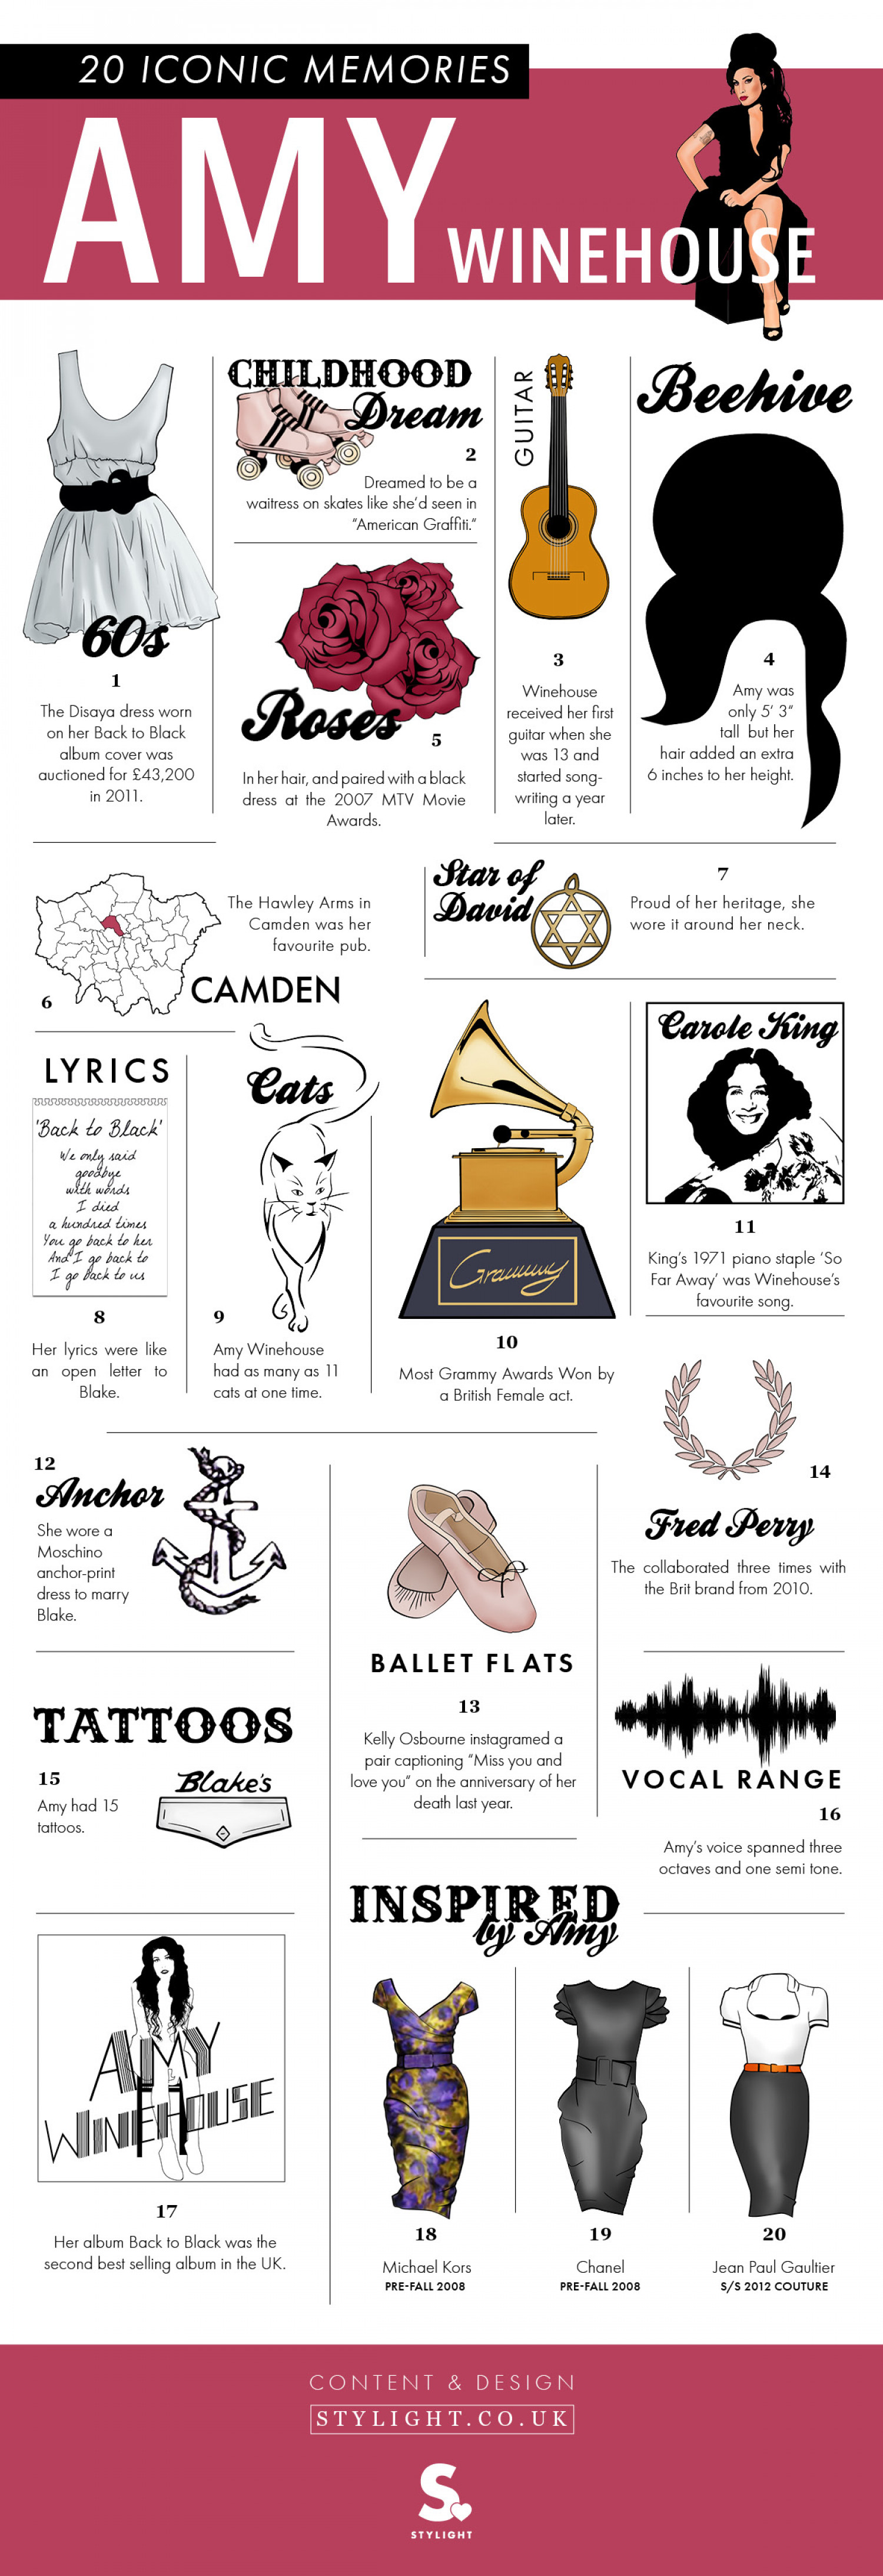 Amy Winehouse: A Tribute To A Legend Infographic